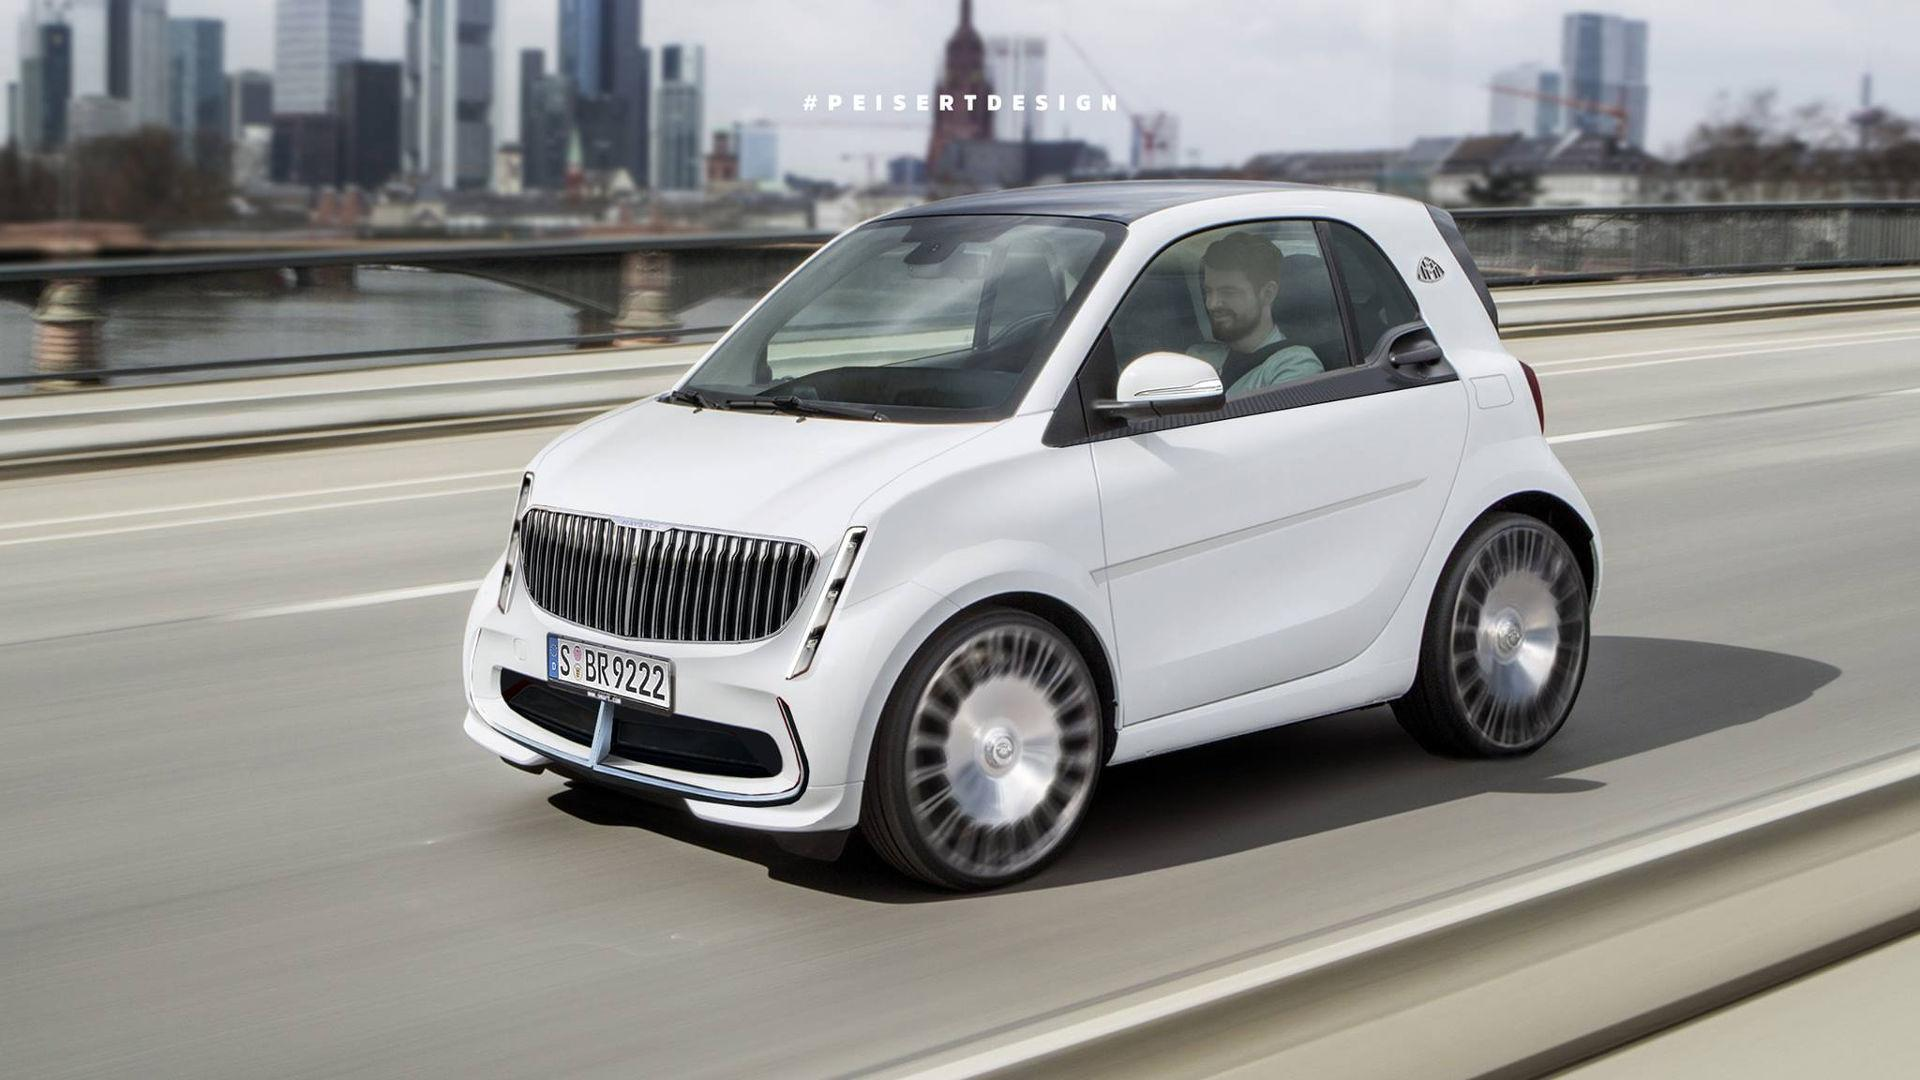 Photoshop Artist Imagines Smart Fortwo Ed With Maybach Design